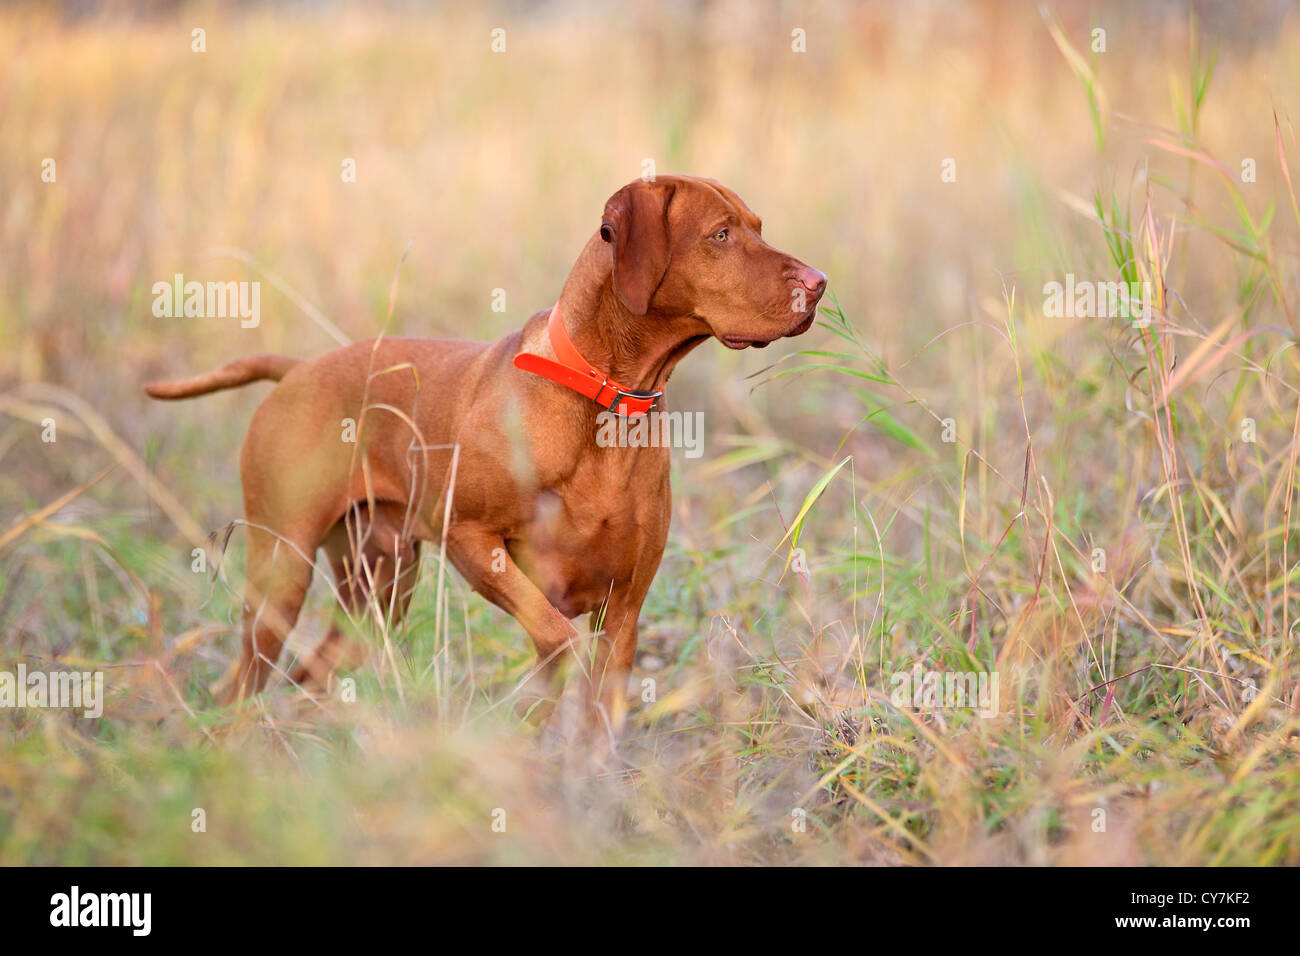 hunting dog pointing in field - Stock Image